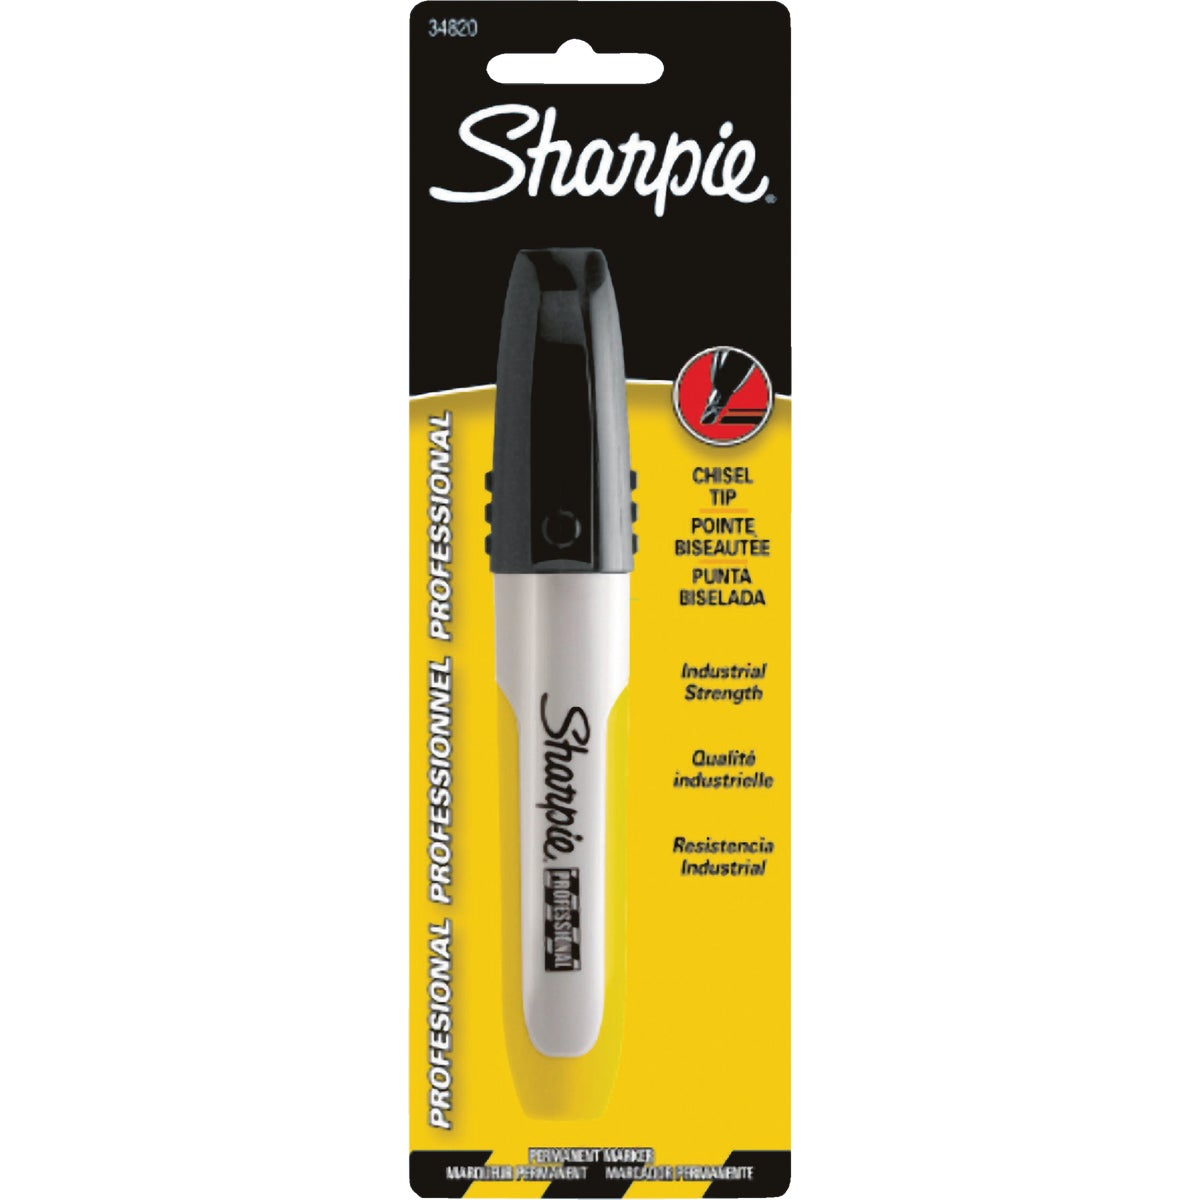 BLK PROFESSIONAL SHARPIE - 34820 by Sanford Corp 01747